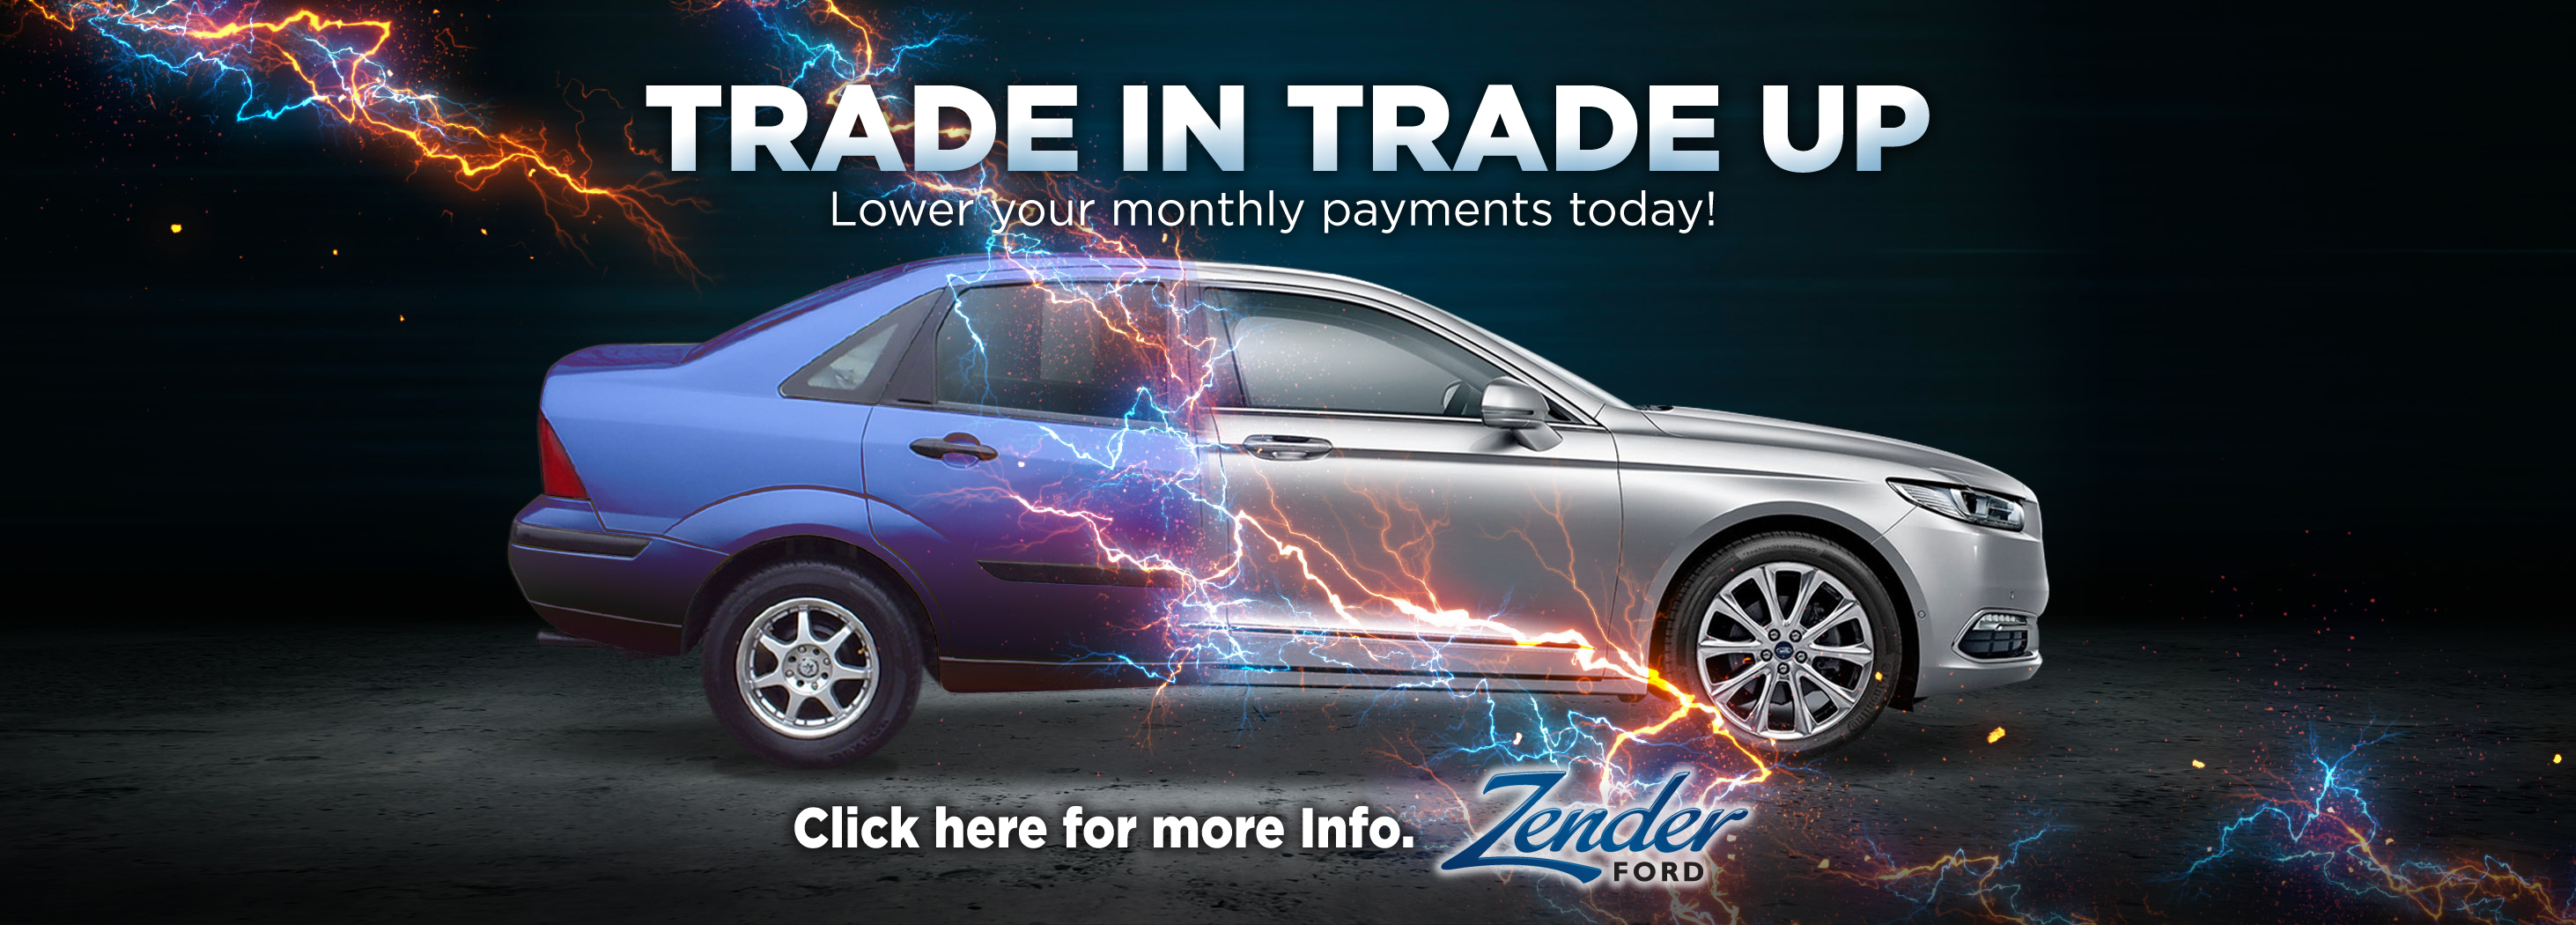 Trade In Trade Up at Zender Ford